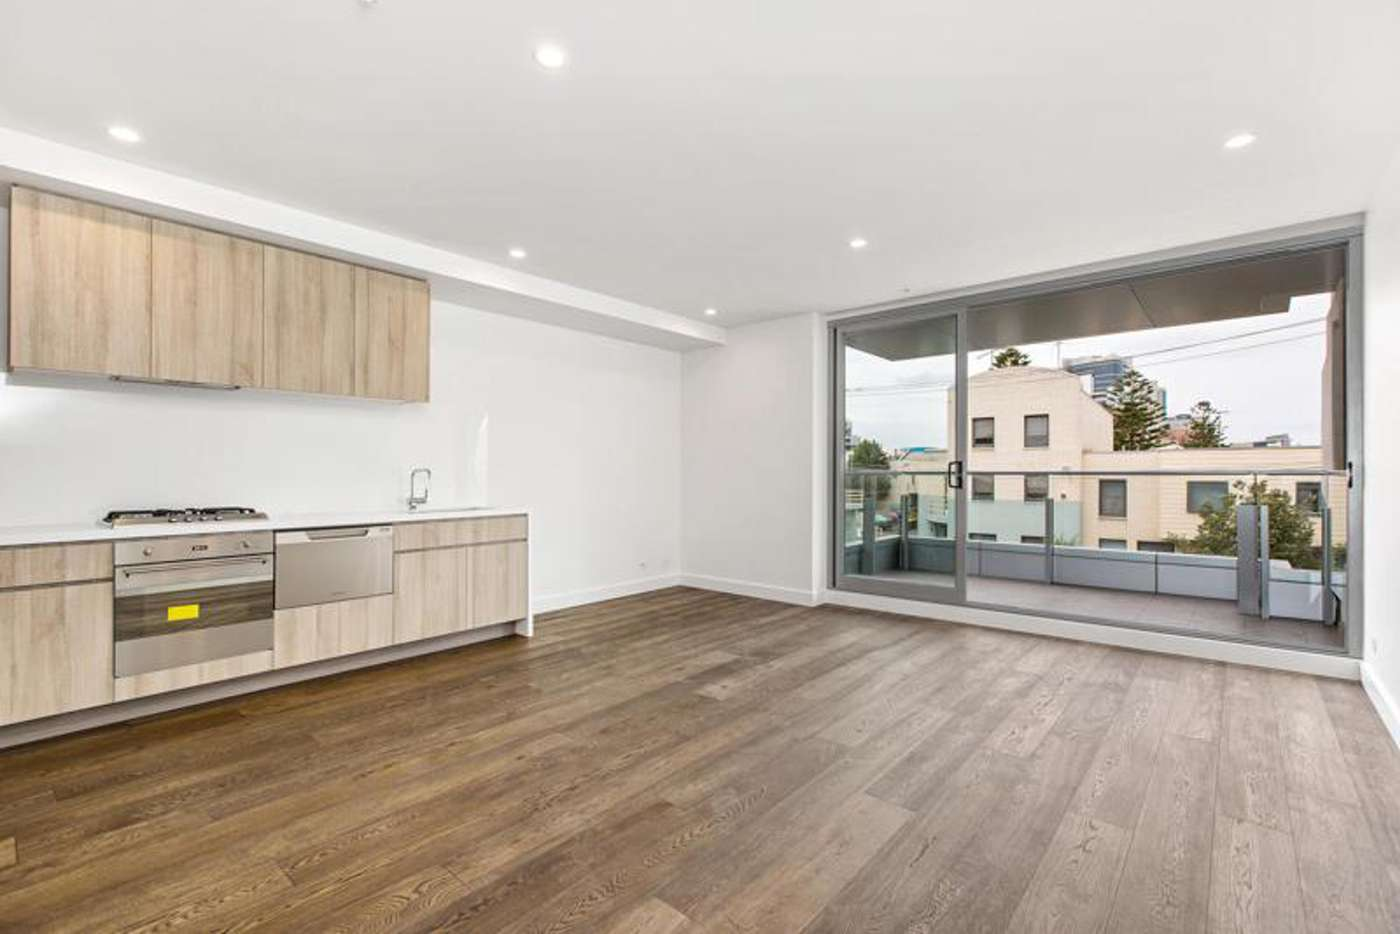 Main view of Homely apartment listing, 101/19-25 Nott Street, Port Melbourne VIC 3207